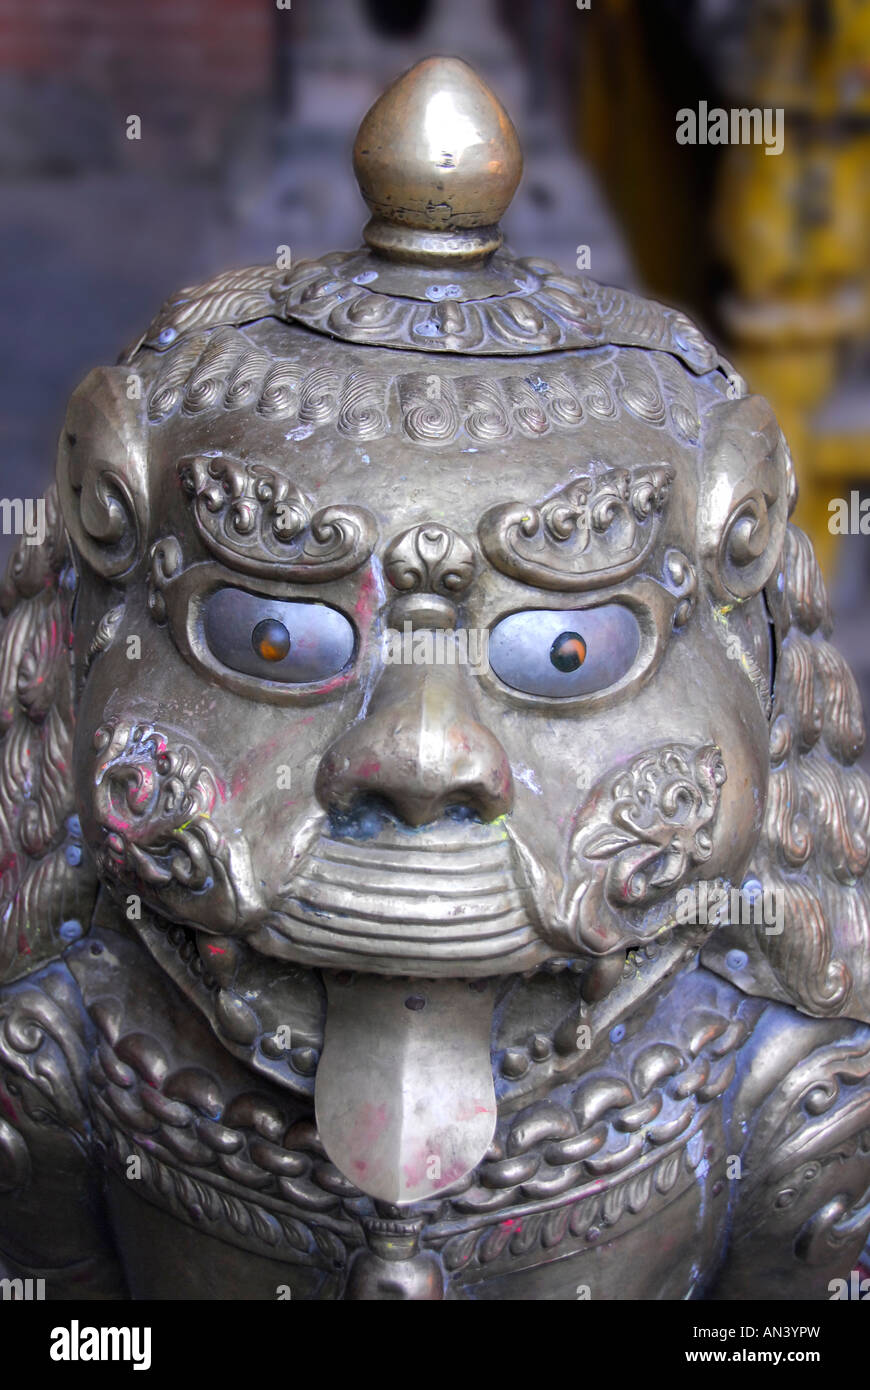 Lion statue in Patan, Nepal - Stock Image